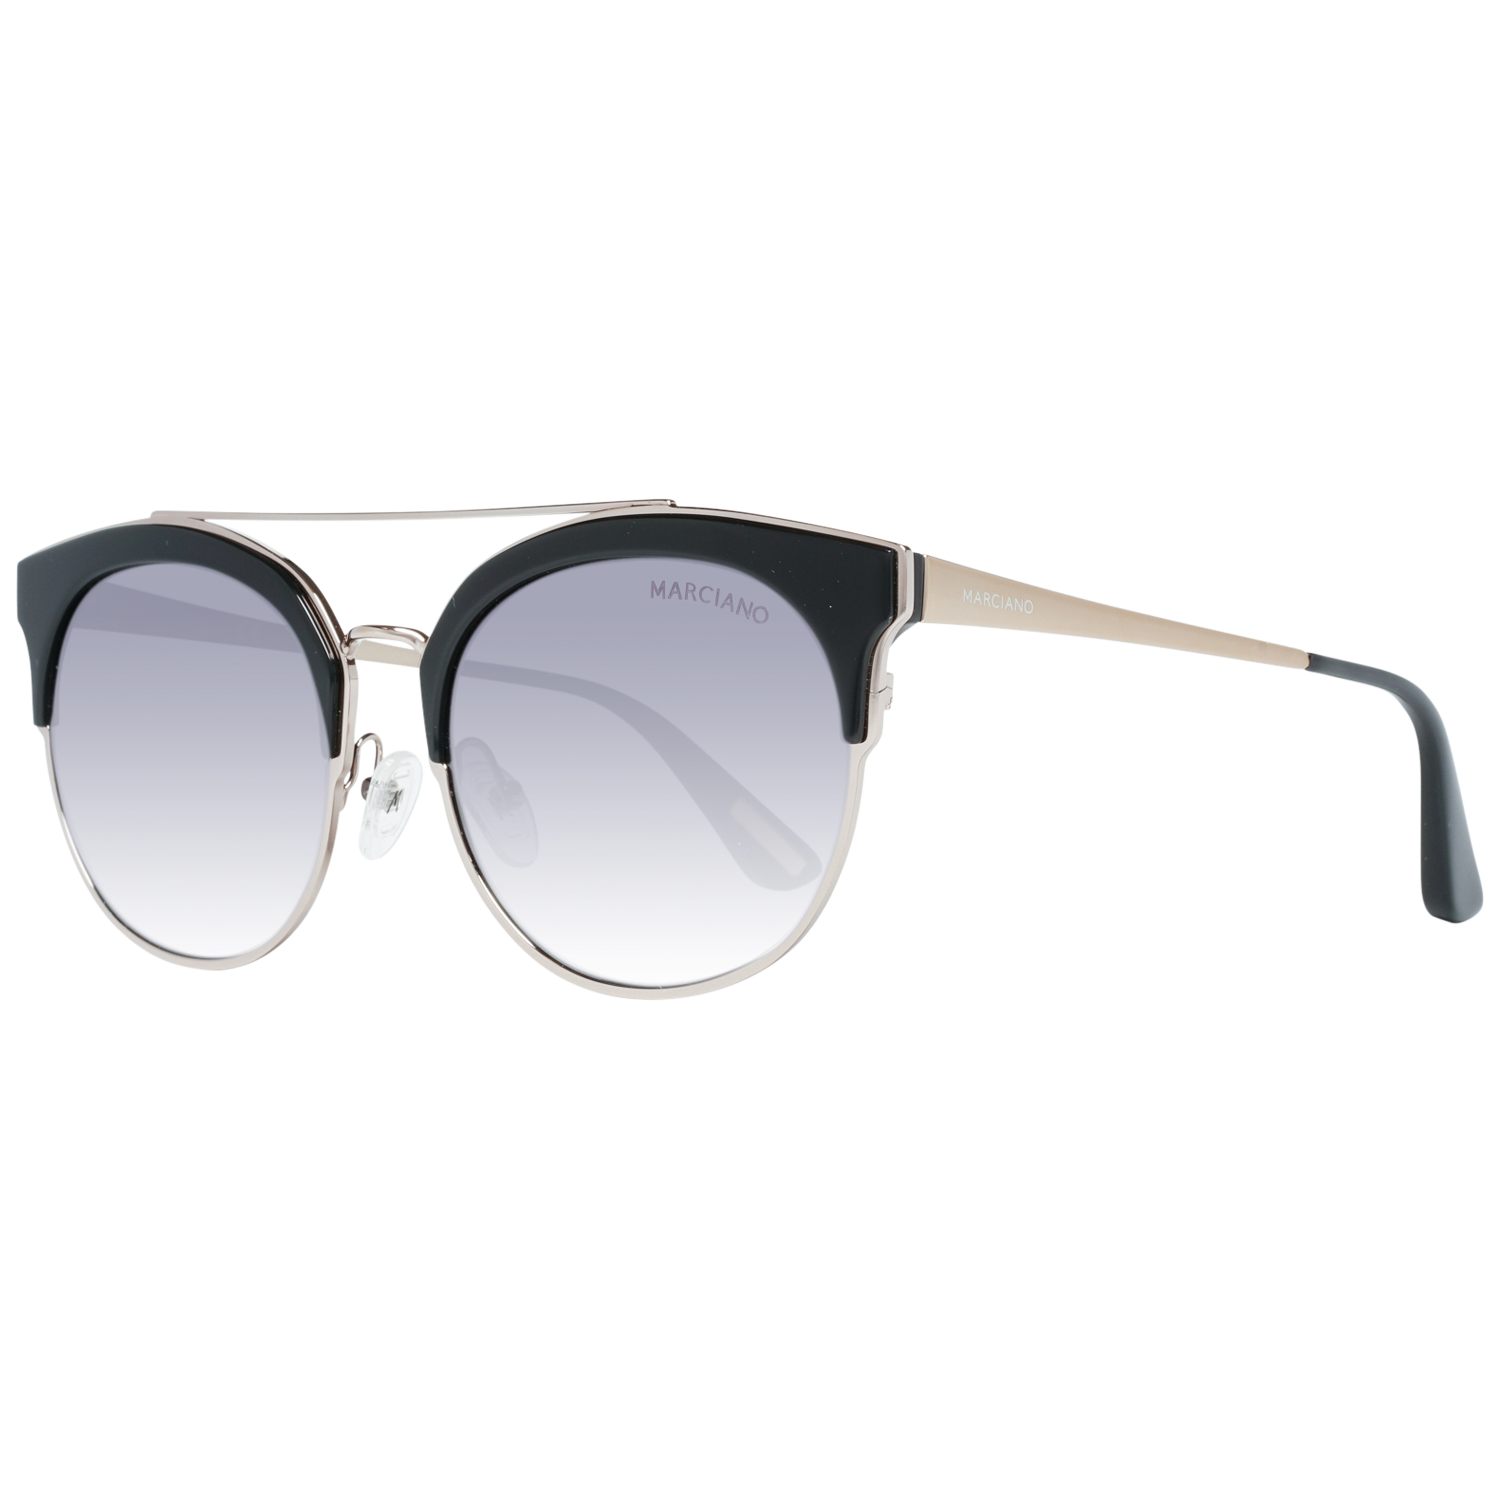 Guess by Marciano Sunglasses GM0764 05B 57 Black